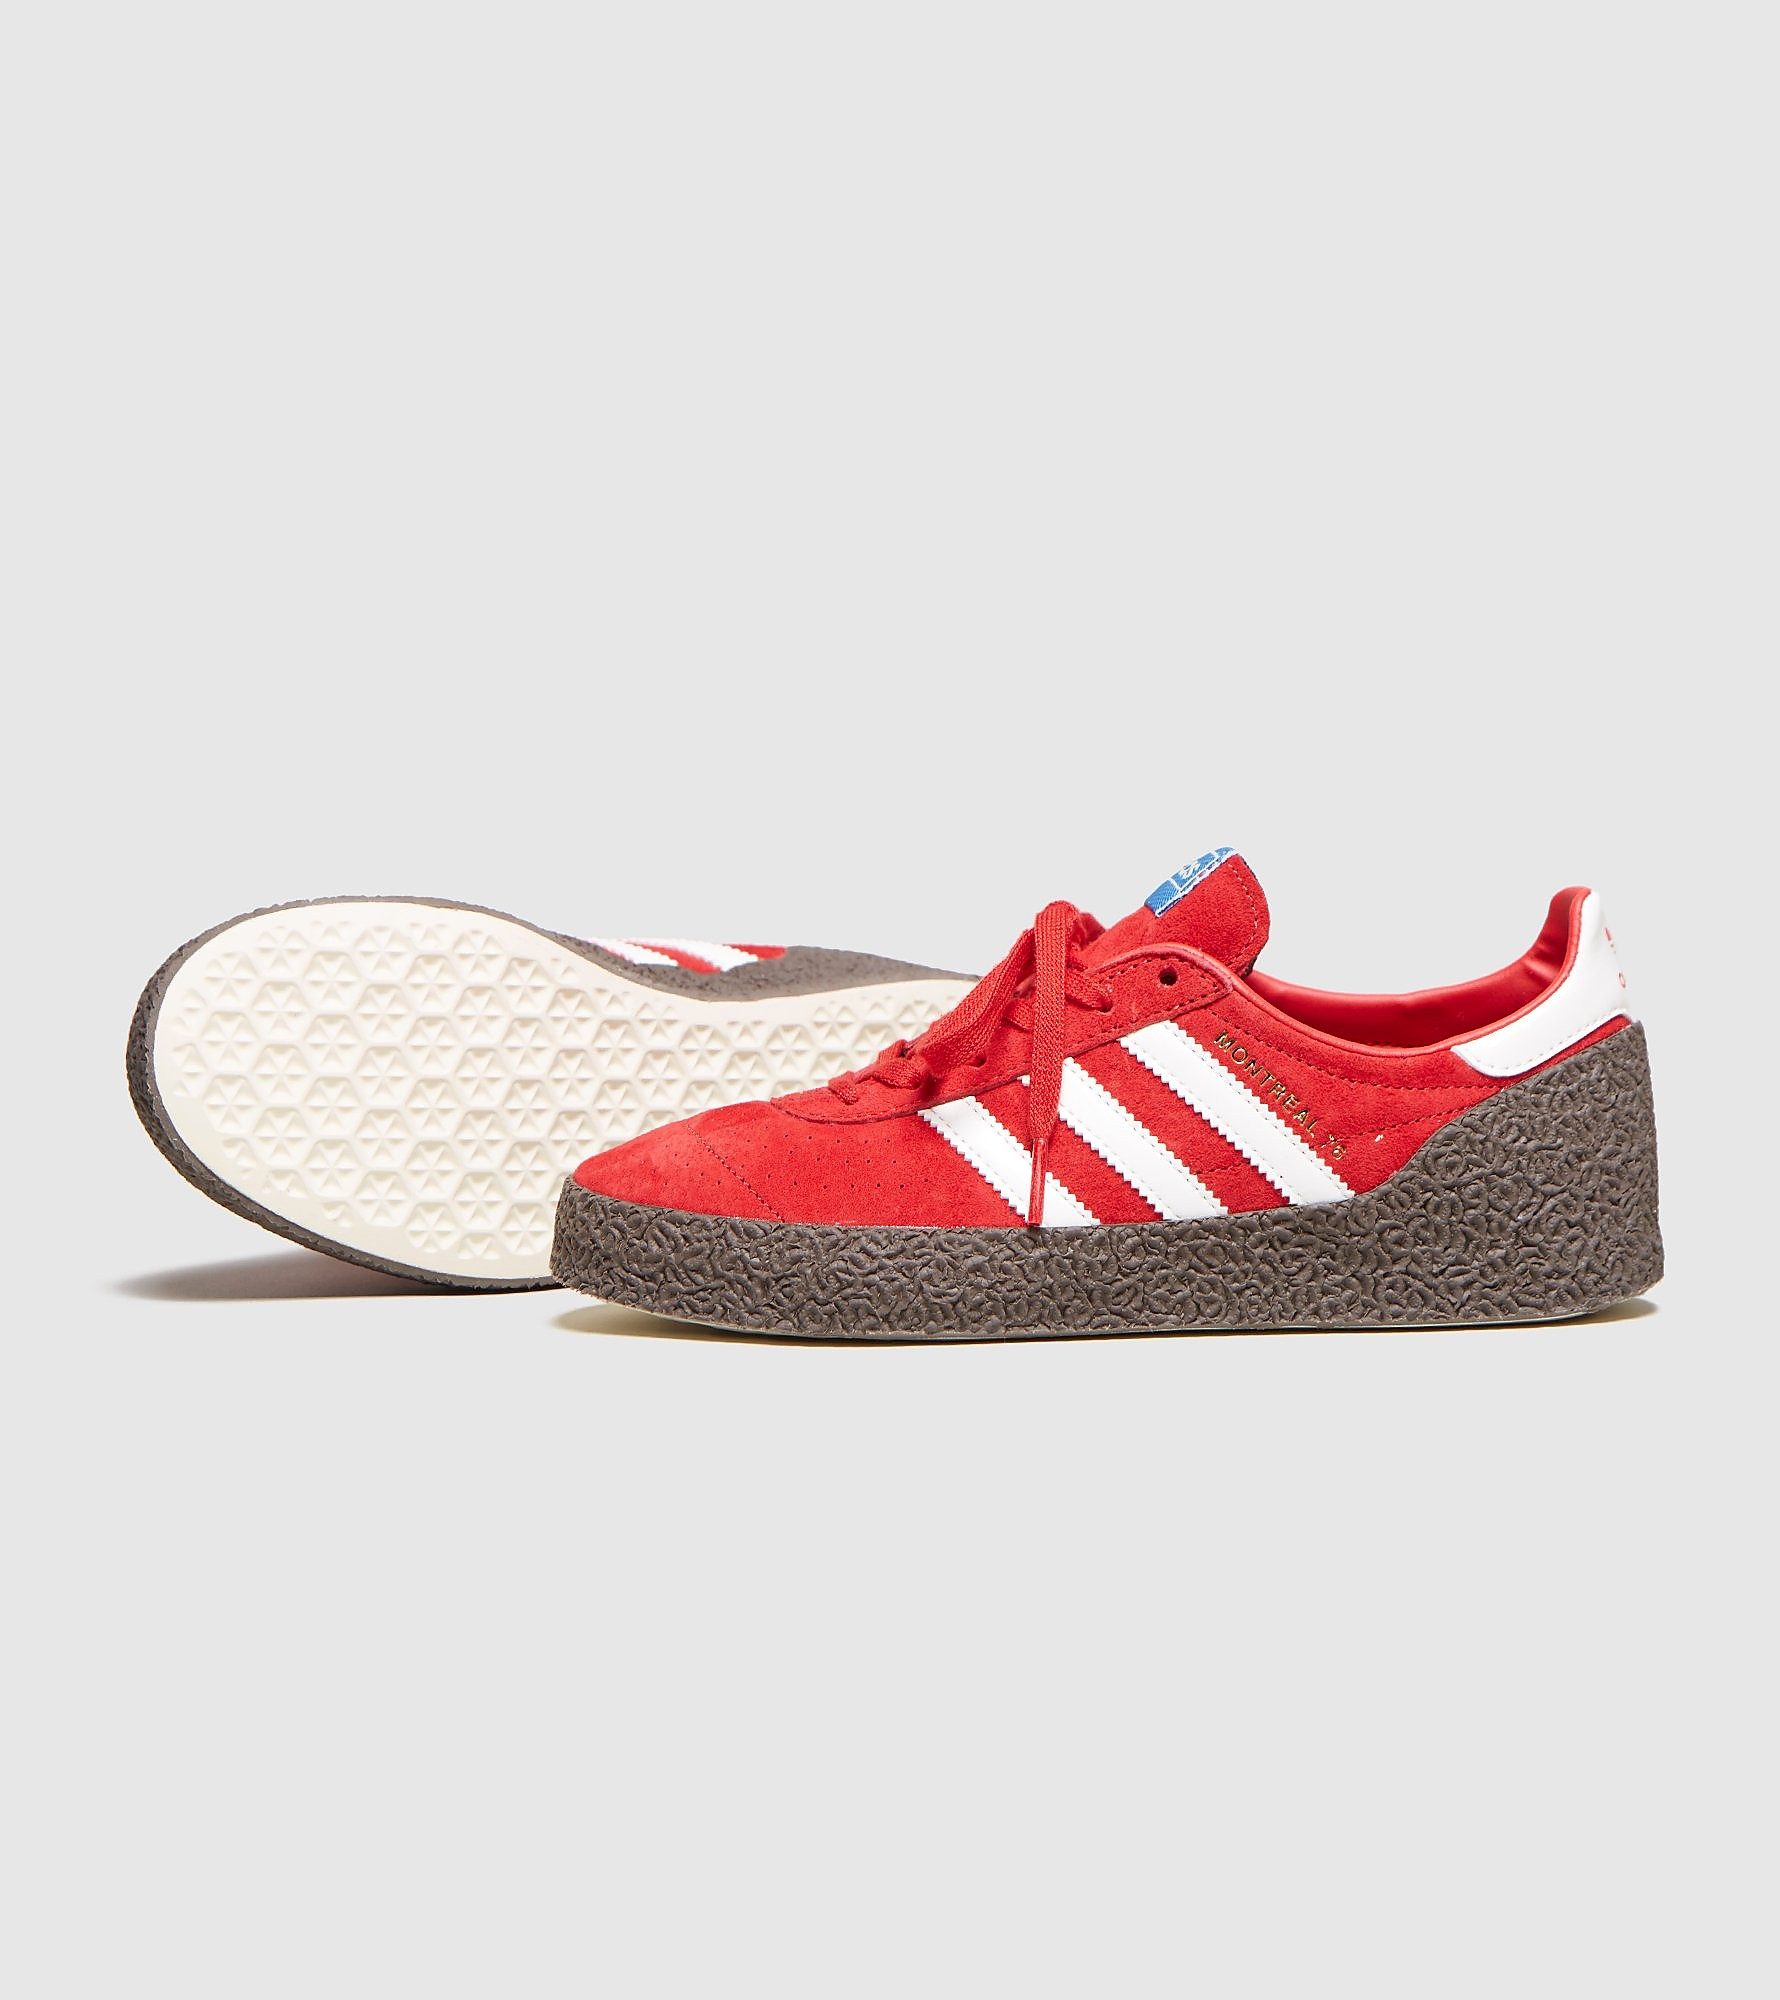 adidas Originals Montreal 76 - size? Exclusive Women's